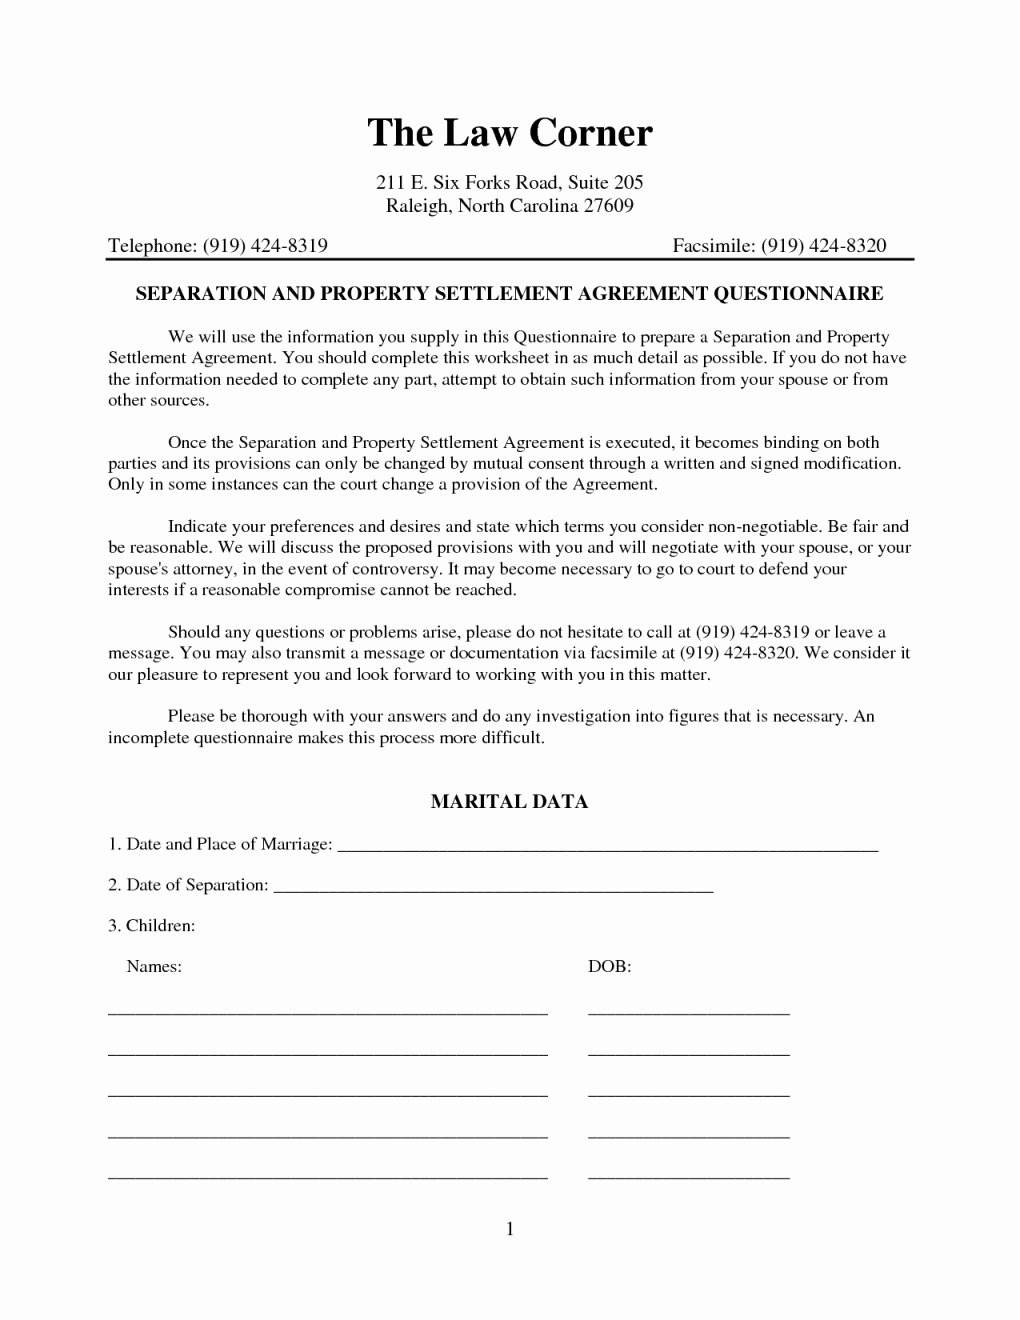 Maryland Separation Agreement Template Best Of Separation Agreement Maryland Template